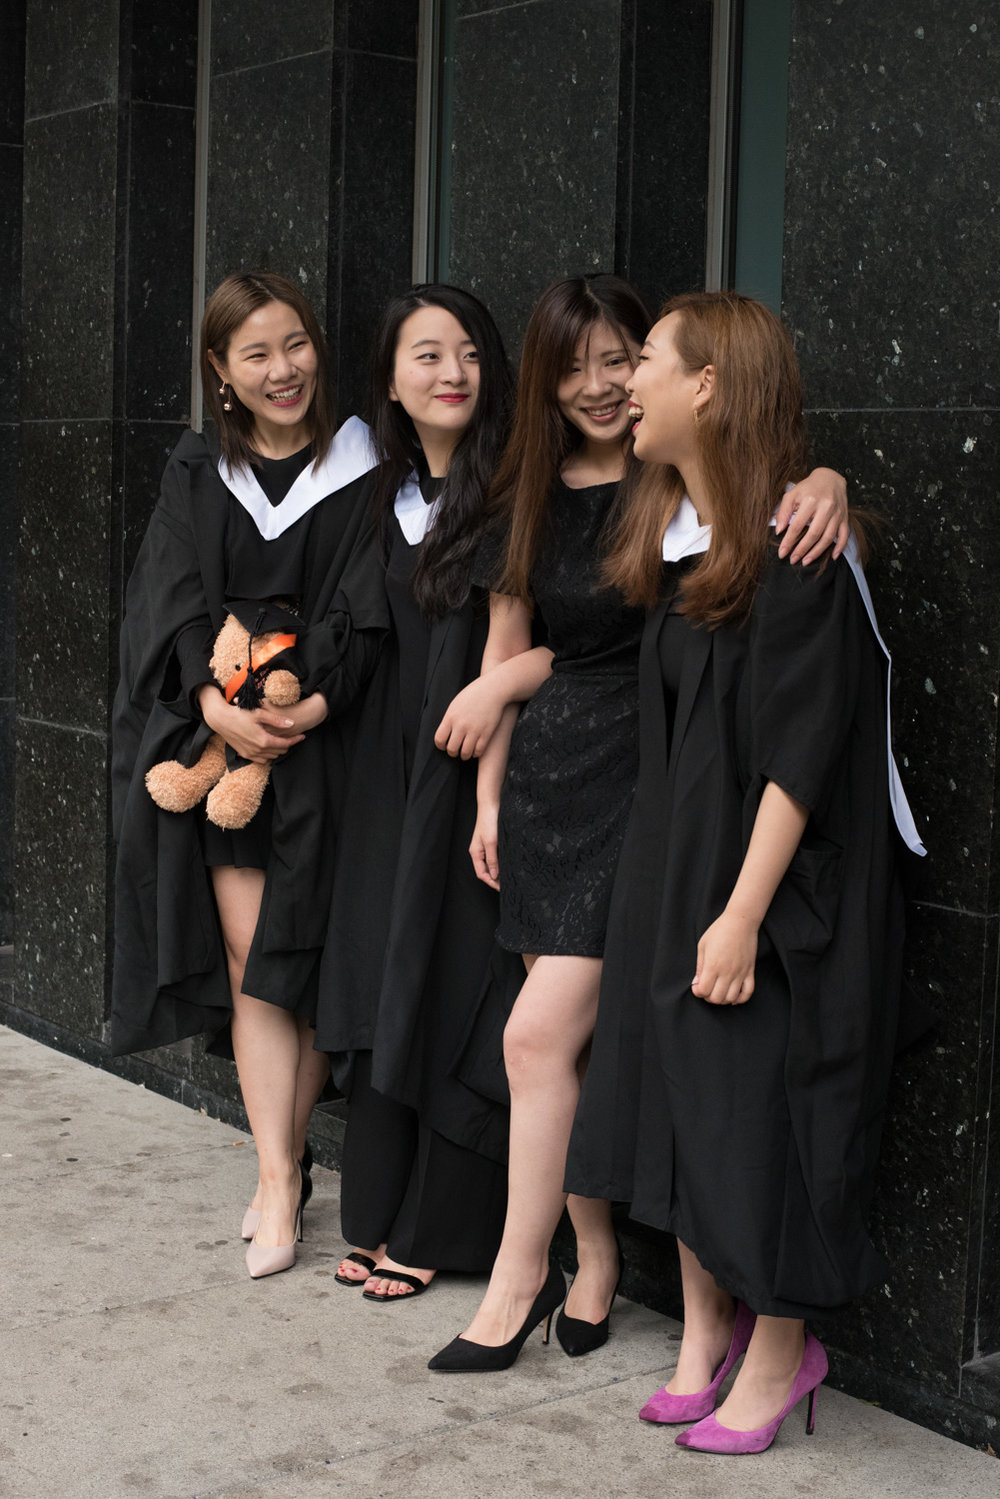 graduation photography - edinburgh university library